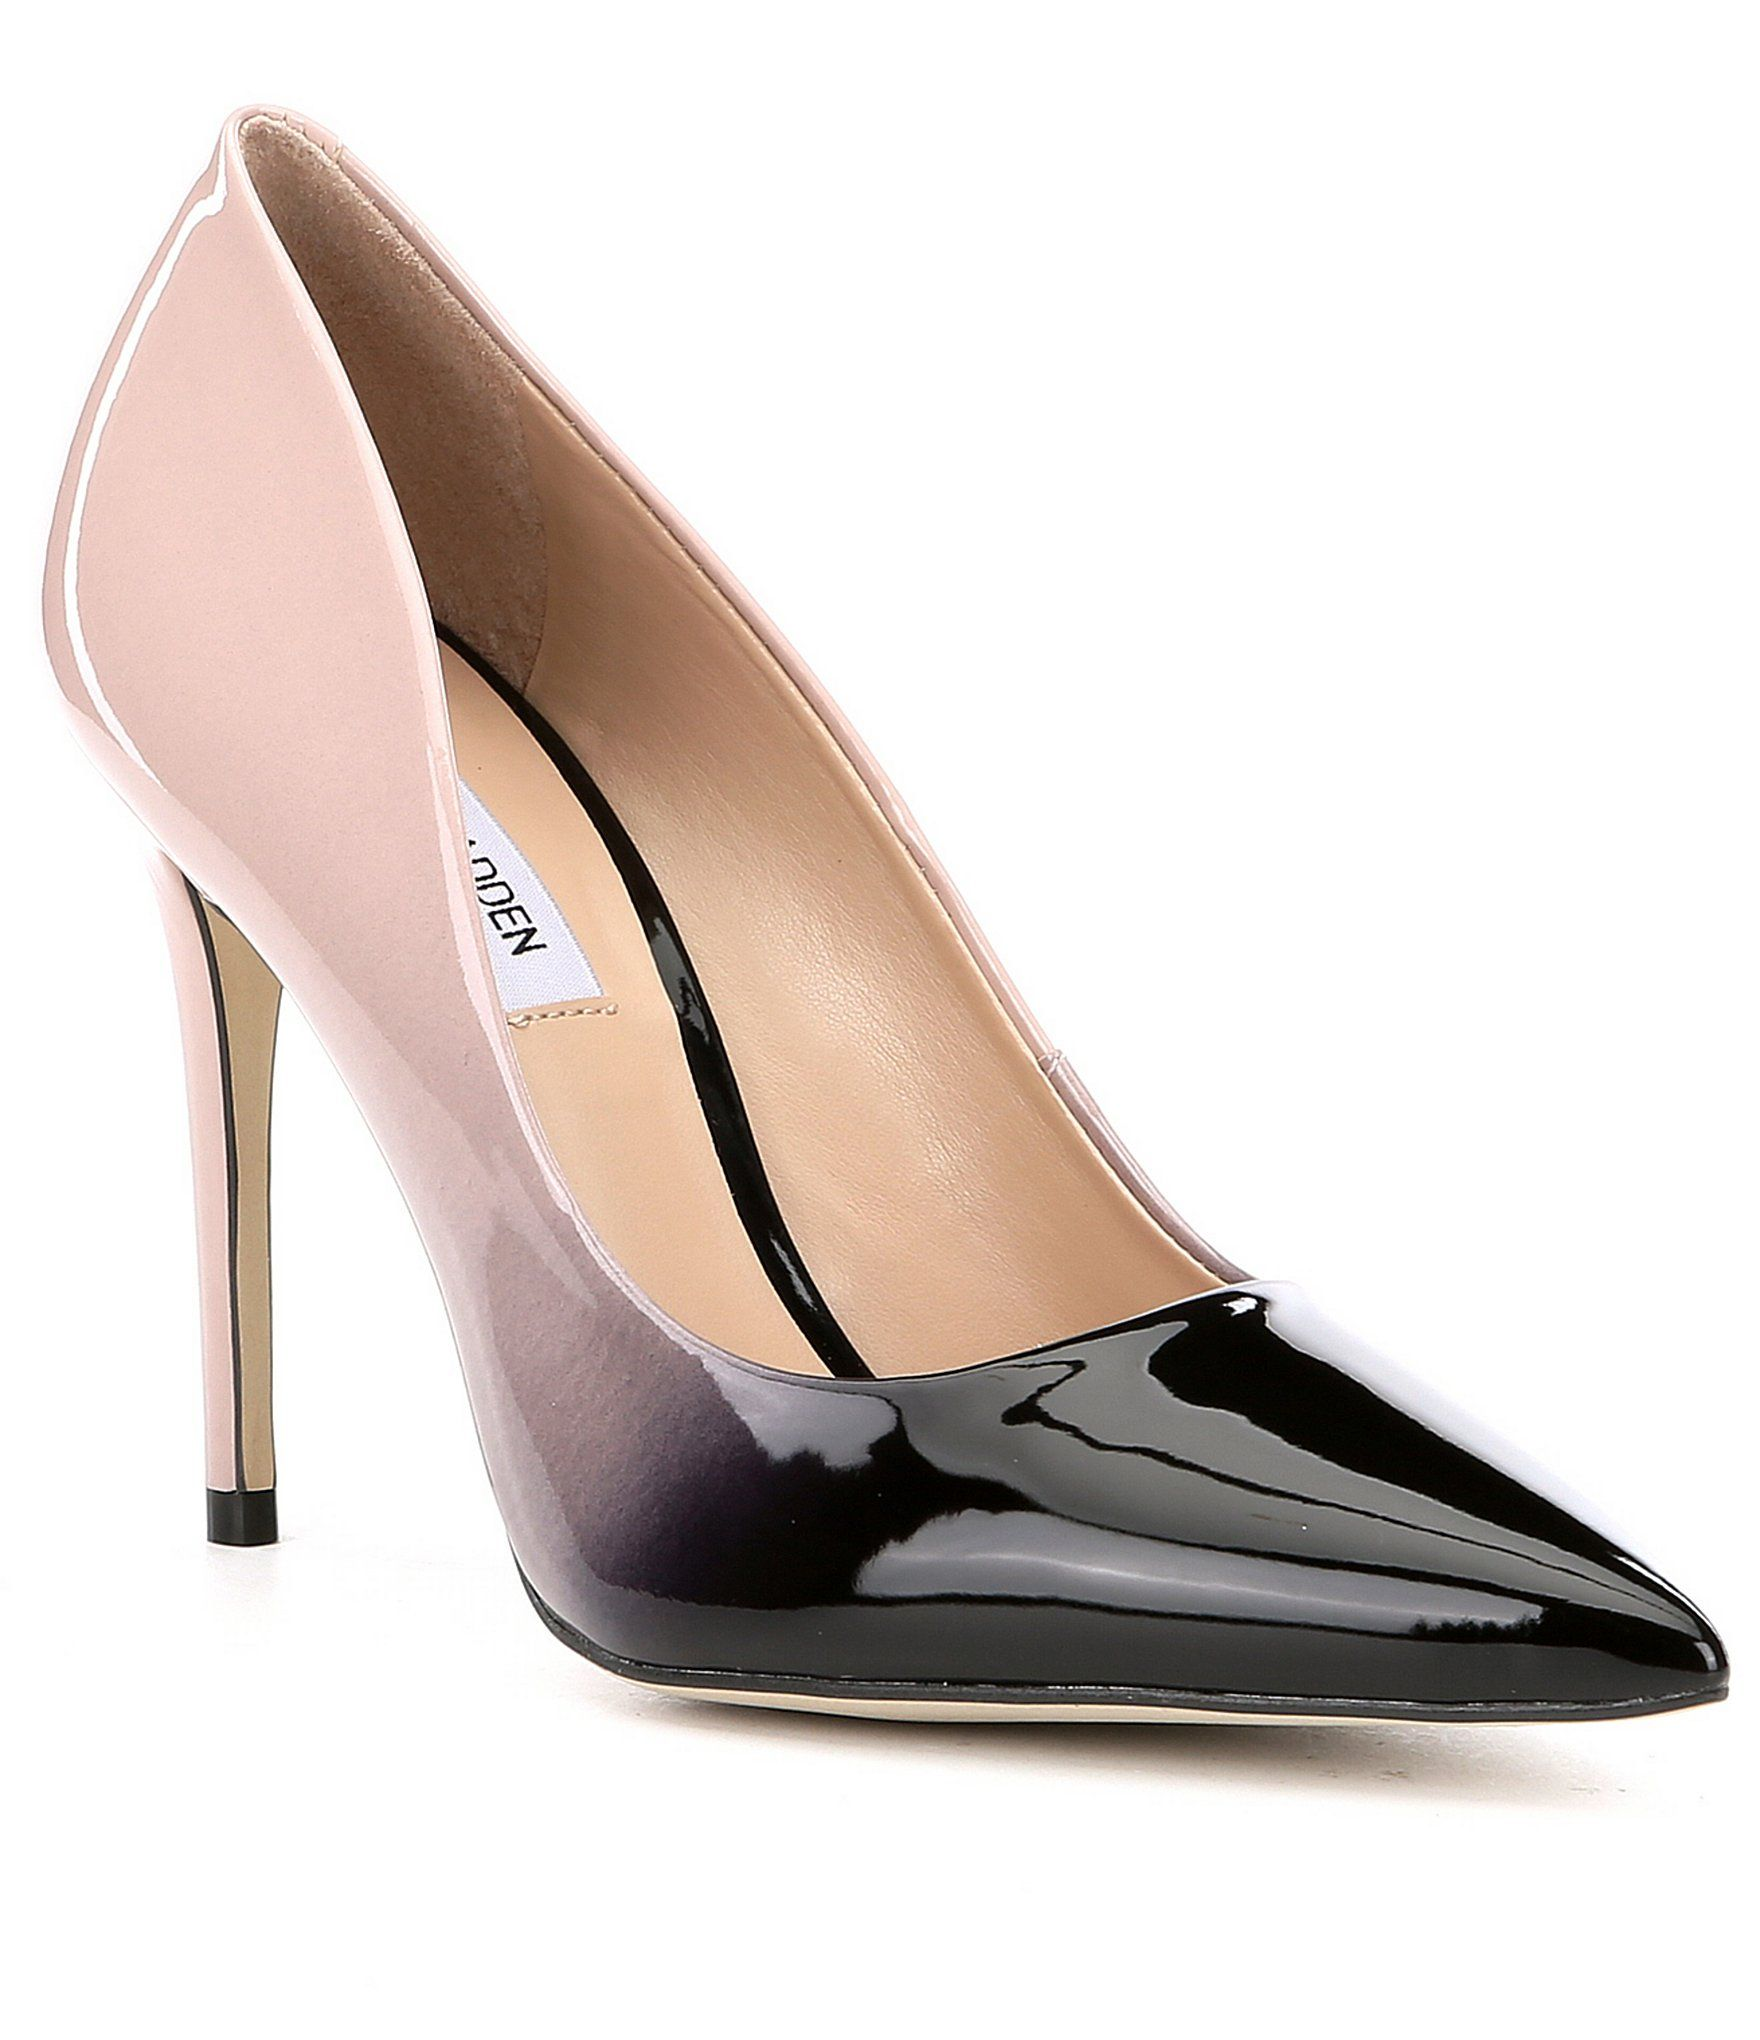 2caa21e319 Shop for Steve Madden Zoey Pumps at Dillards.com. Visit Dillards.com to  find clothing, accessories, shoes, cosmetics & more. The Style of Your Life.